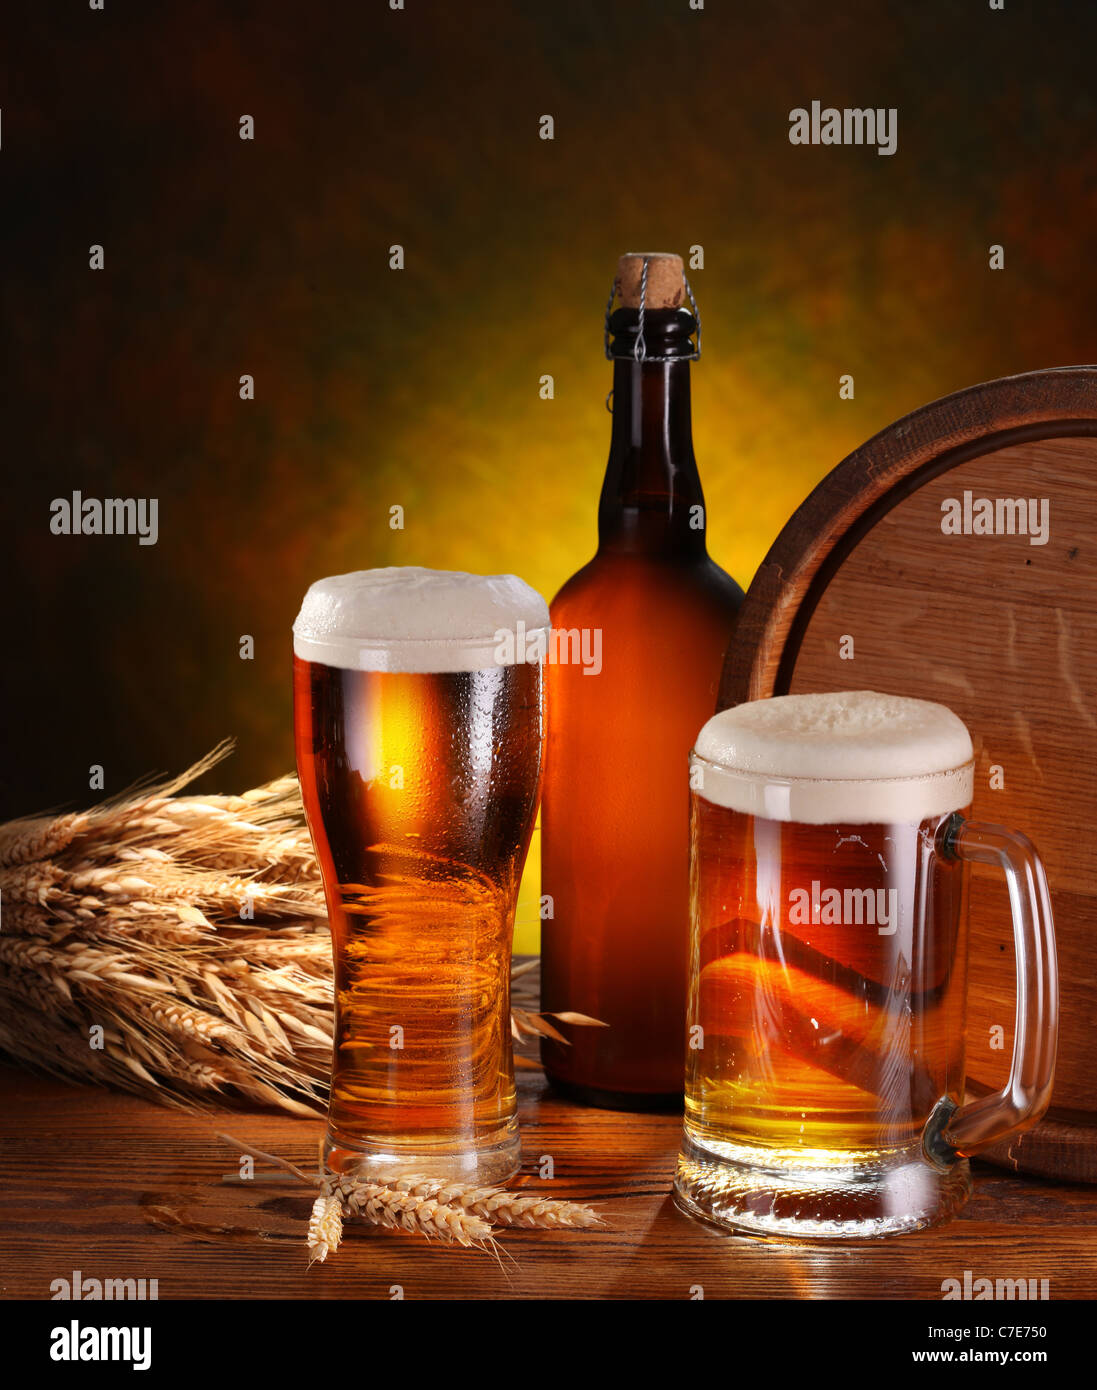 Still Life with a keg of beer and draft beer by the glass. - Stock Image